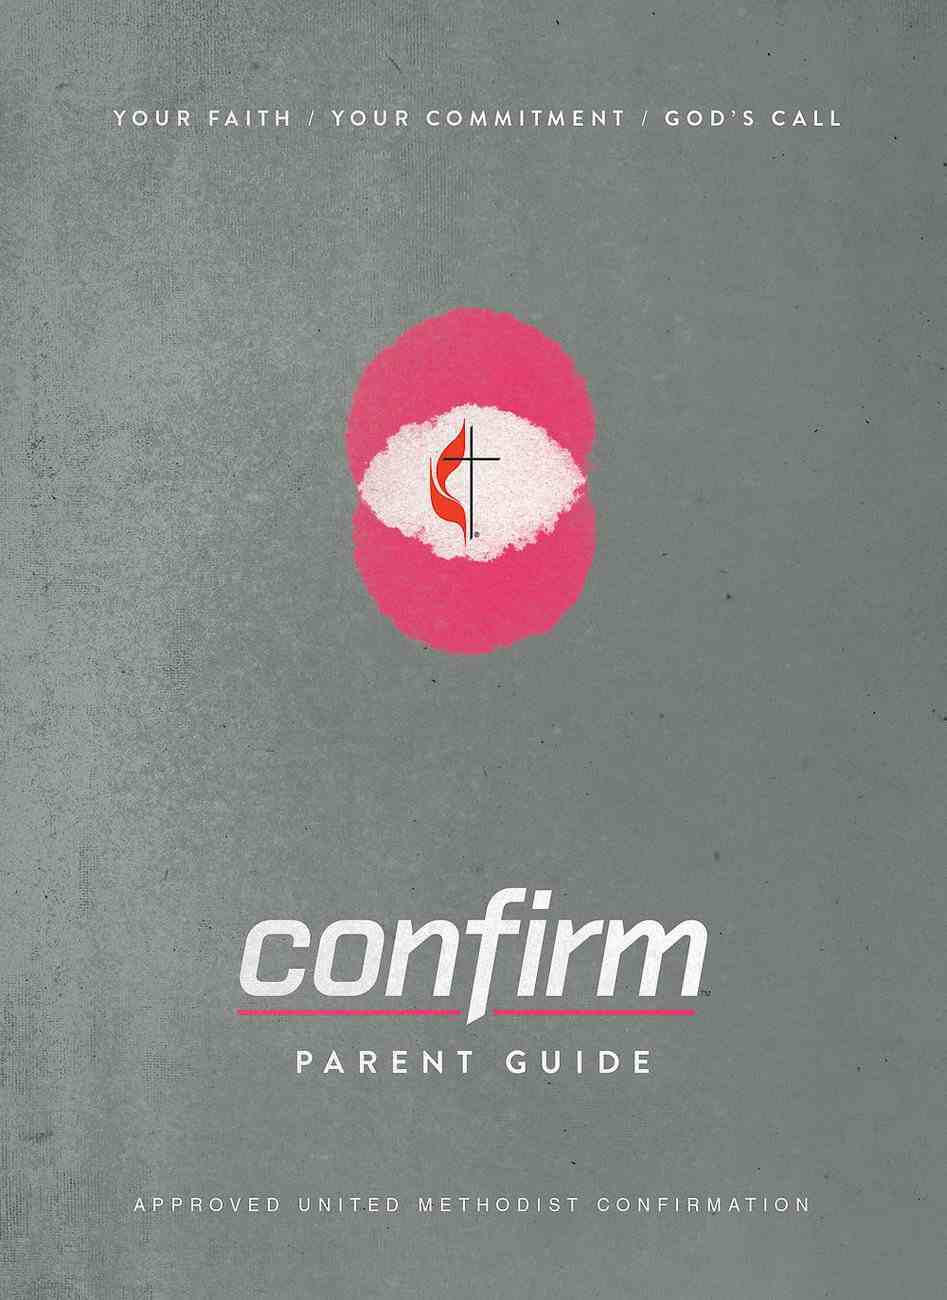 Confirm: Your Faith. Your Commitment. God's Call. (Parent Guide) eBook